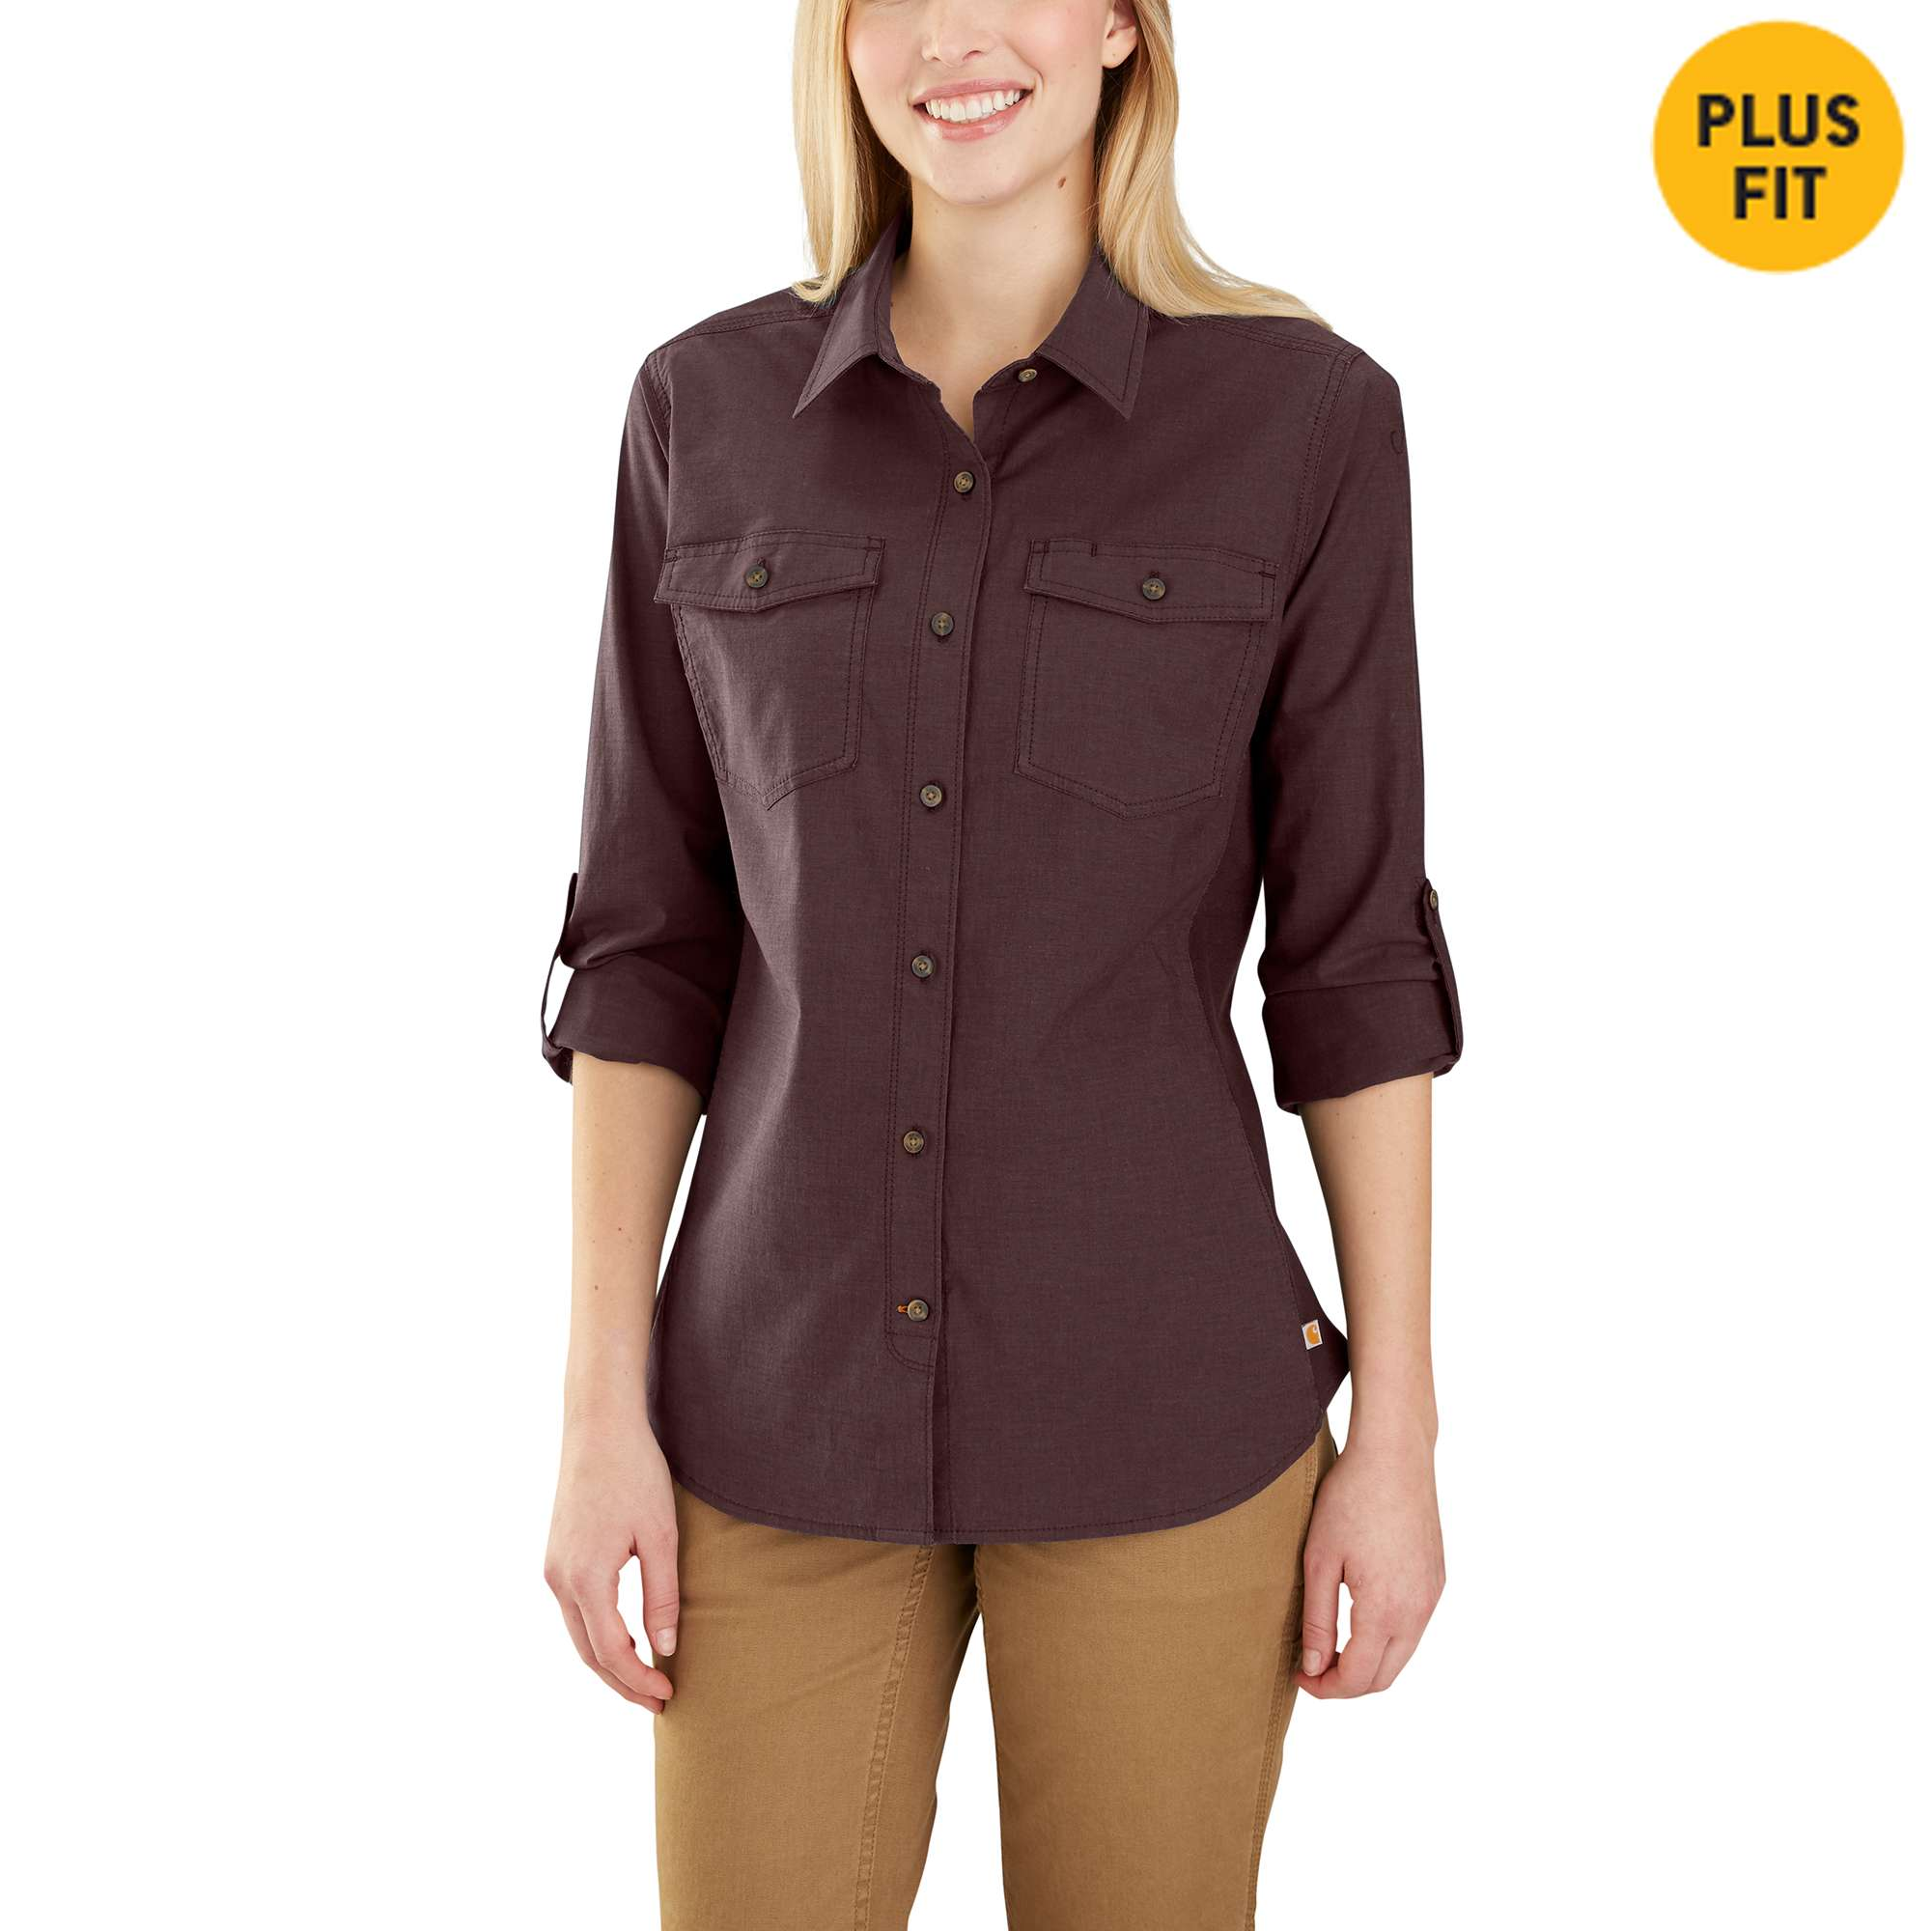 Carhartt Rugged Flex Bozeman Shirt